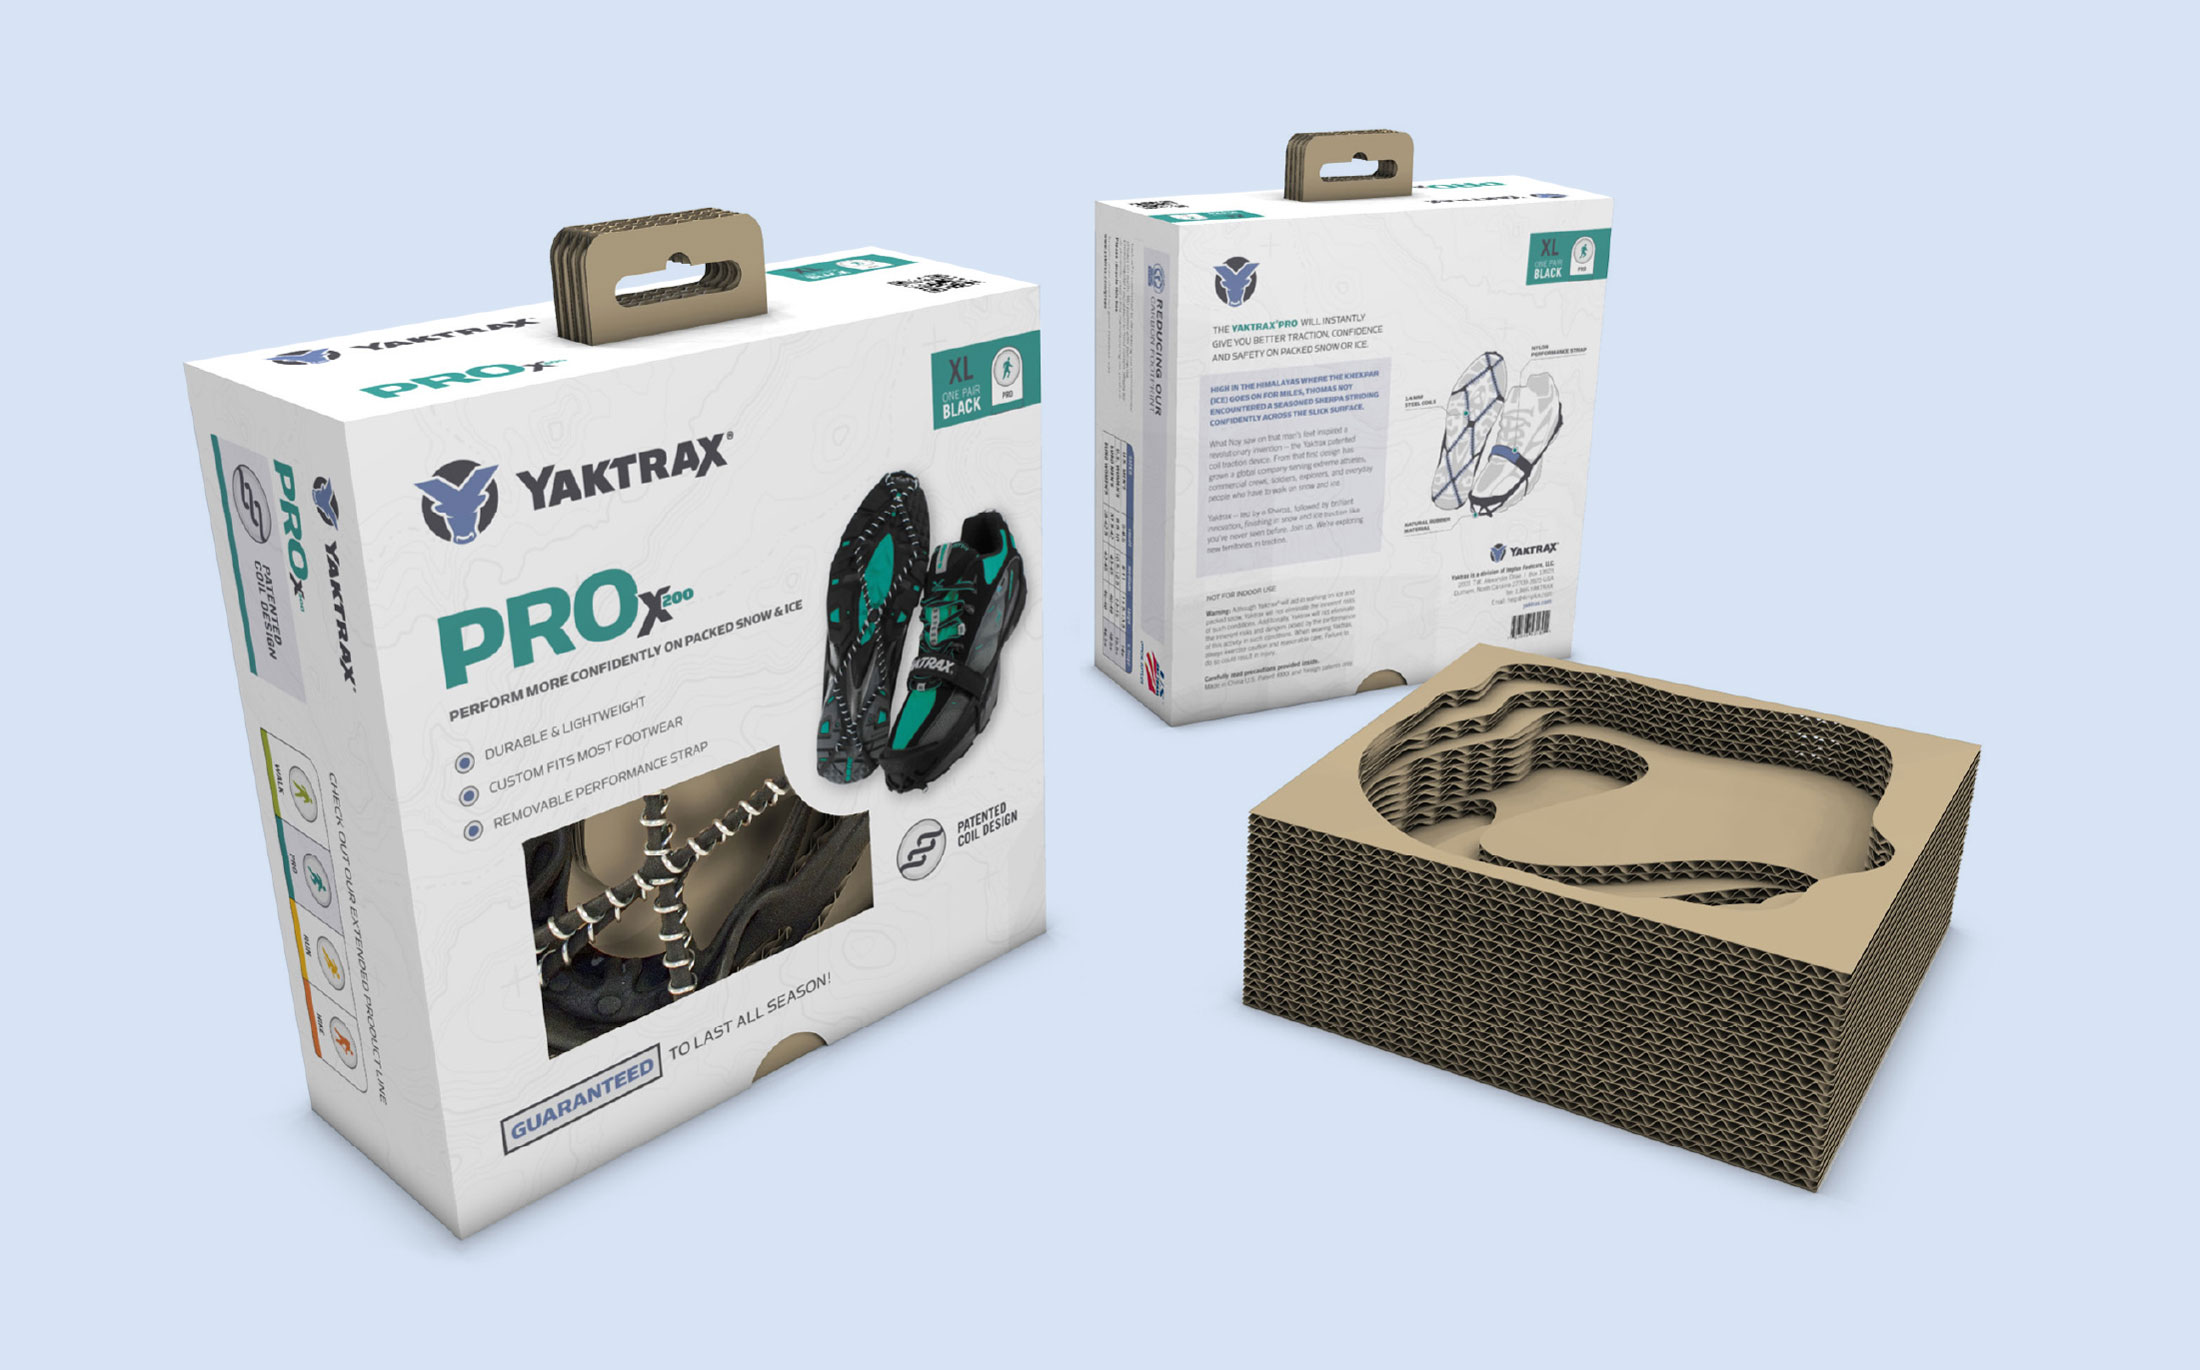 Yaktrax Product Packaging